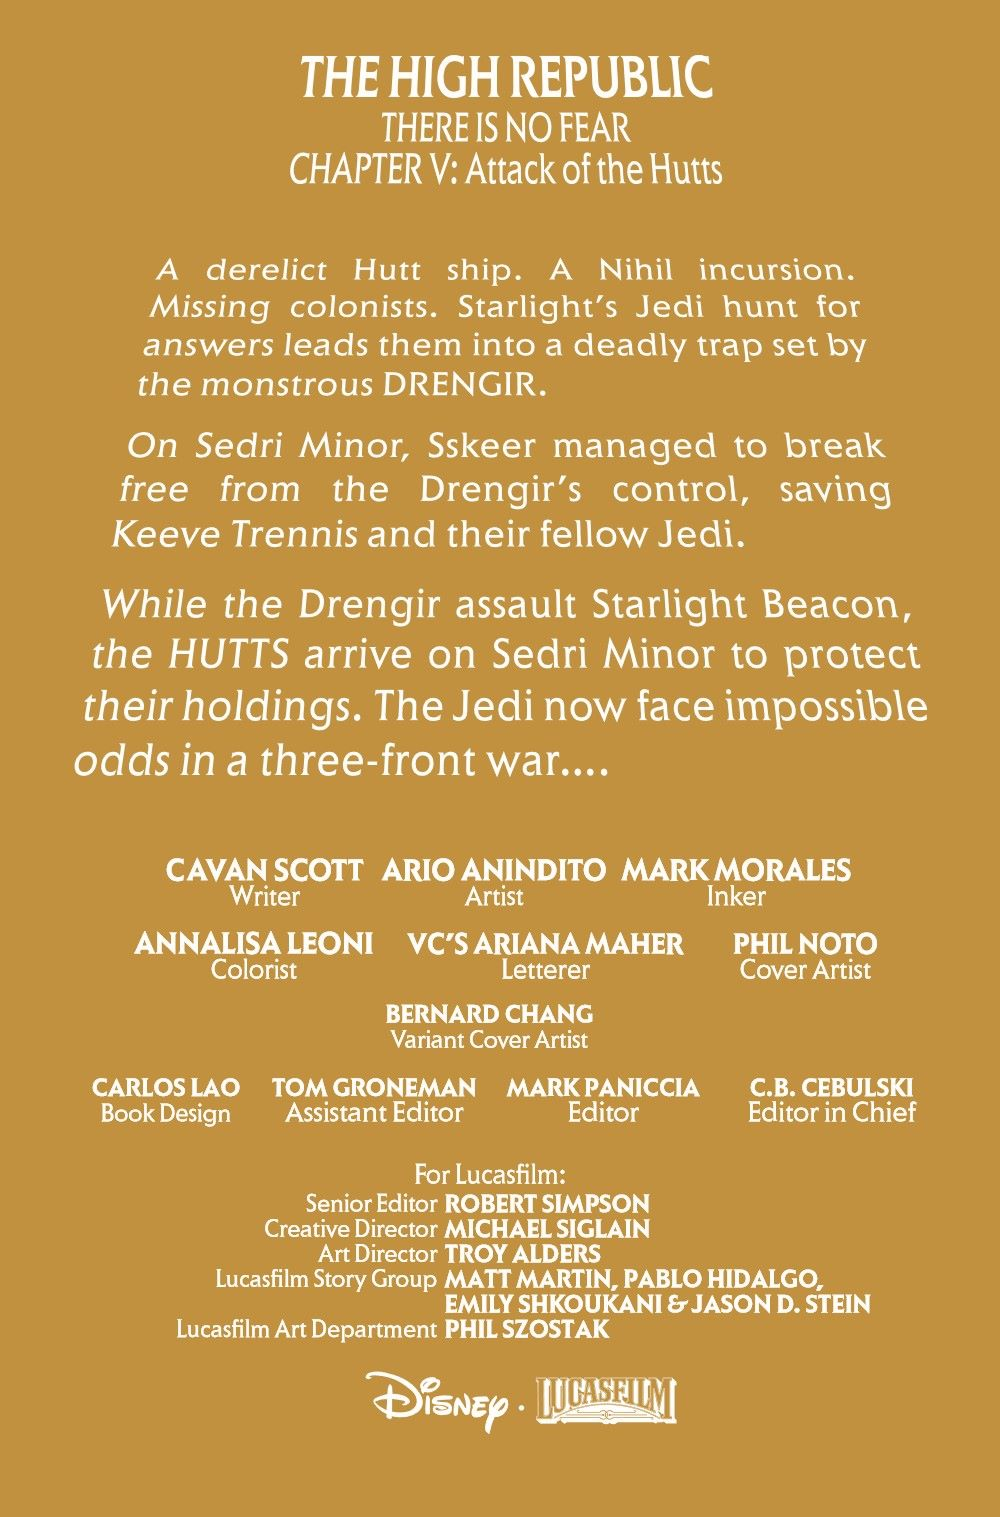 STWHIGHREP2021005_Preview-2 ComicList Previews: STAR WARS THE HIGH REPUBLIC #5